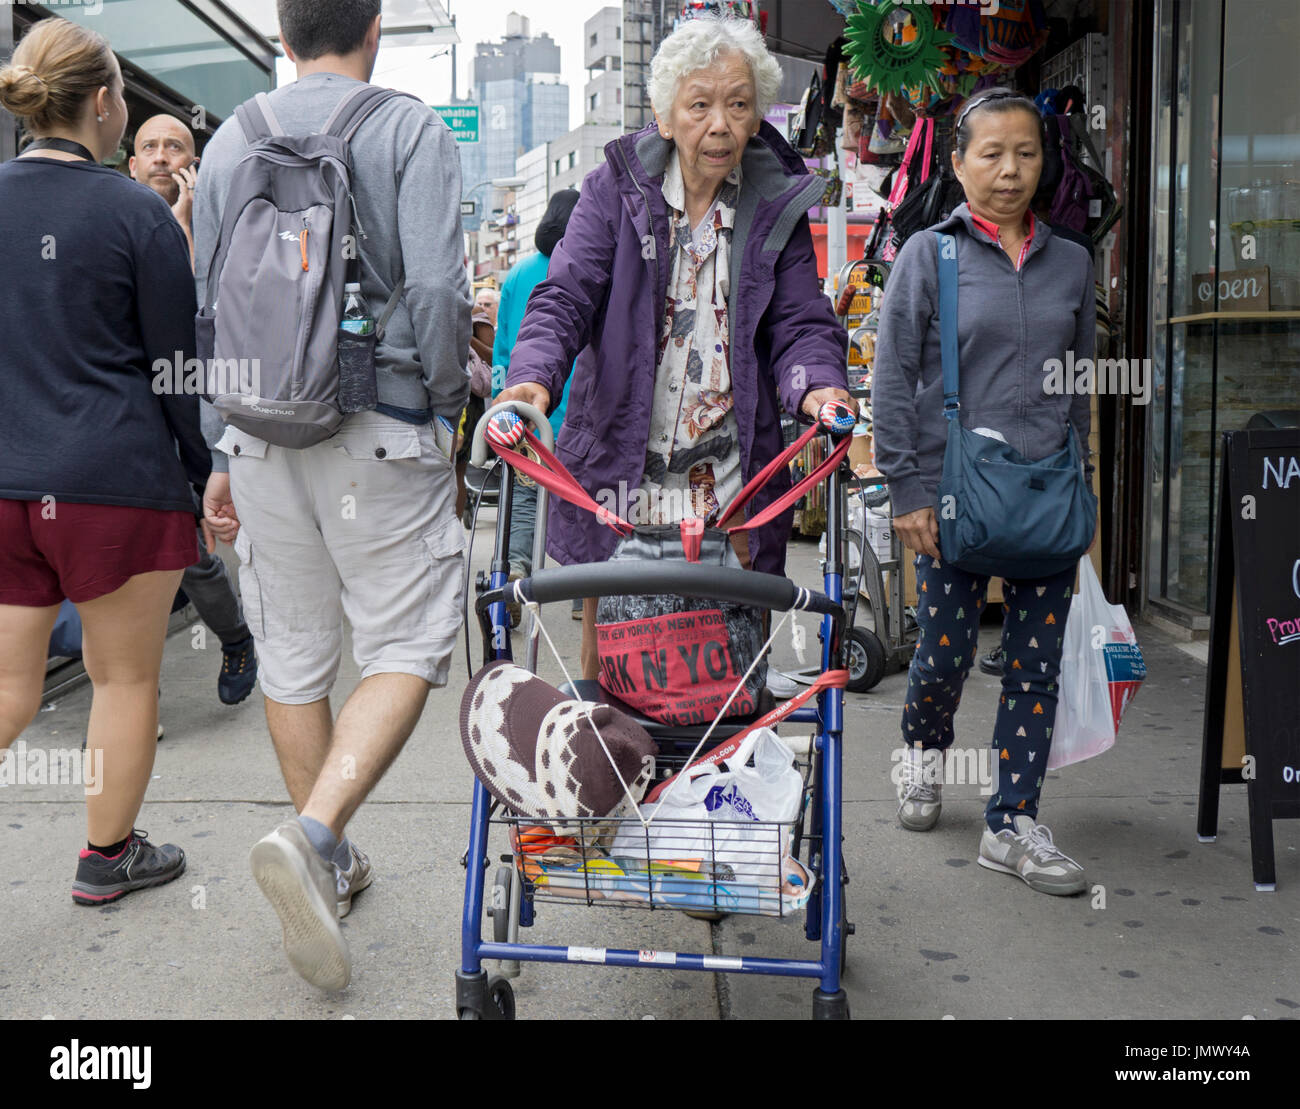 ae3b276a0 An older Chinese American woman outside shopping on a summer day on Canal  Street in Chinatown, Lower Manhattan, New York City